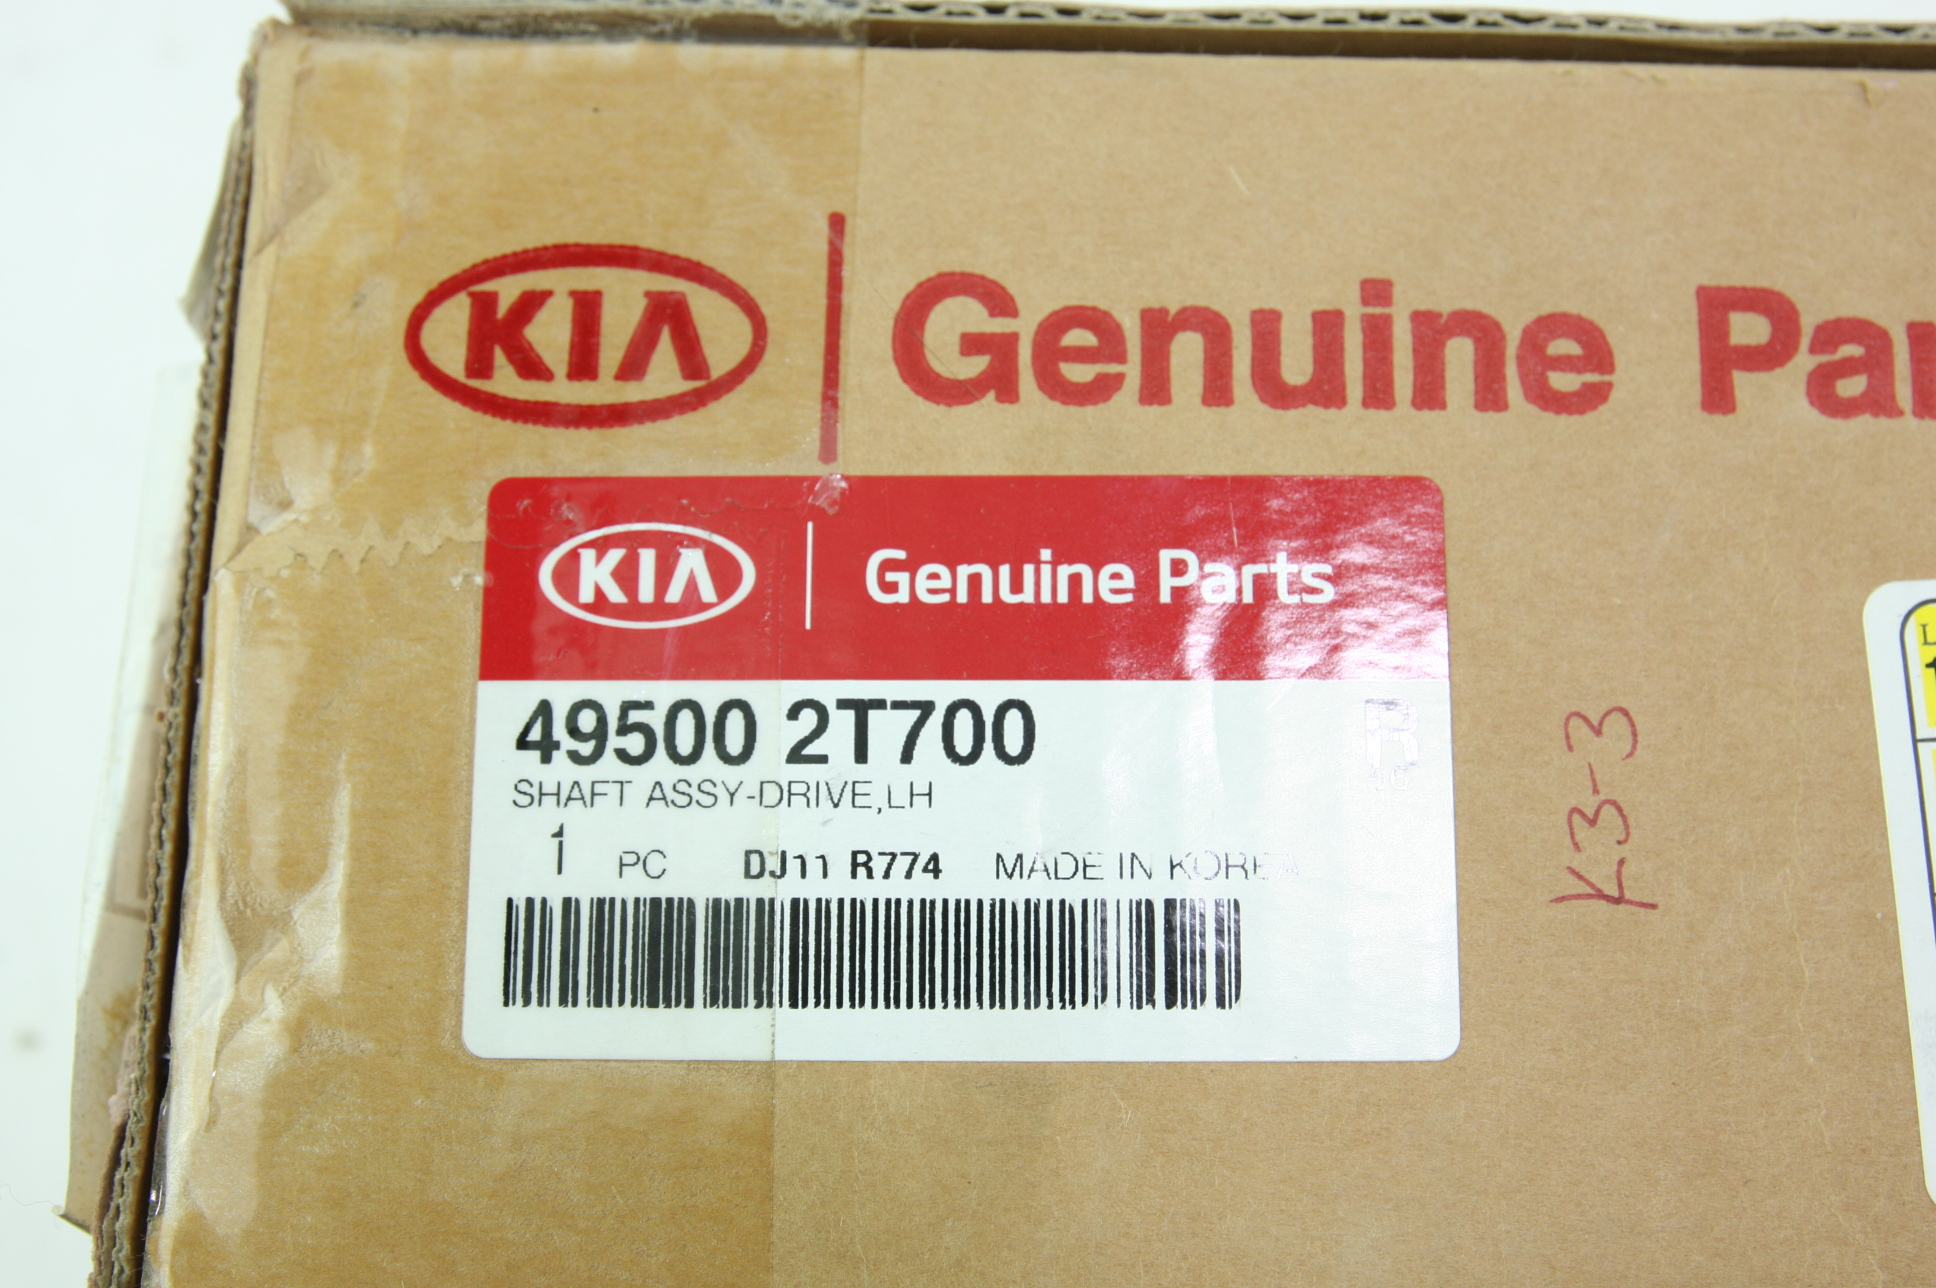 ** Genuine Kia Front Left CV Axle Assembly New OEM 495002T700 Fast Free Shipping - image 2